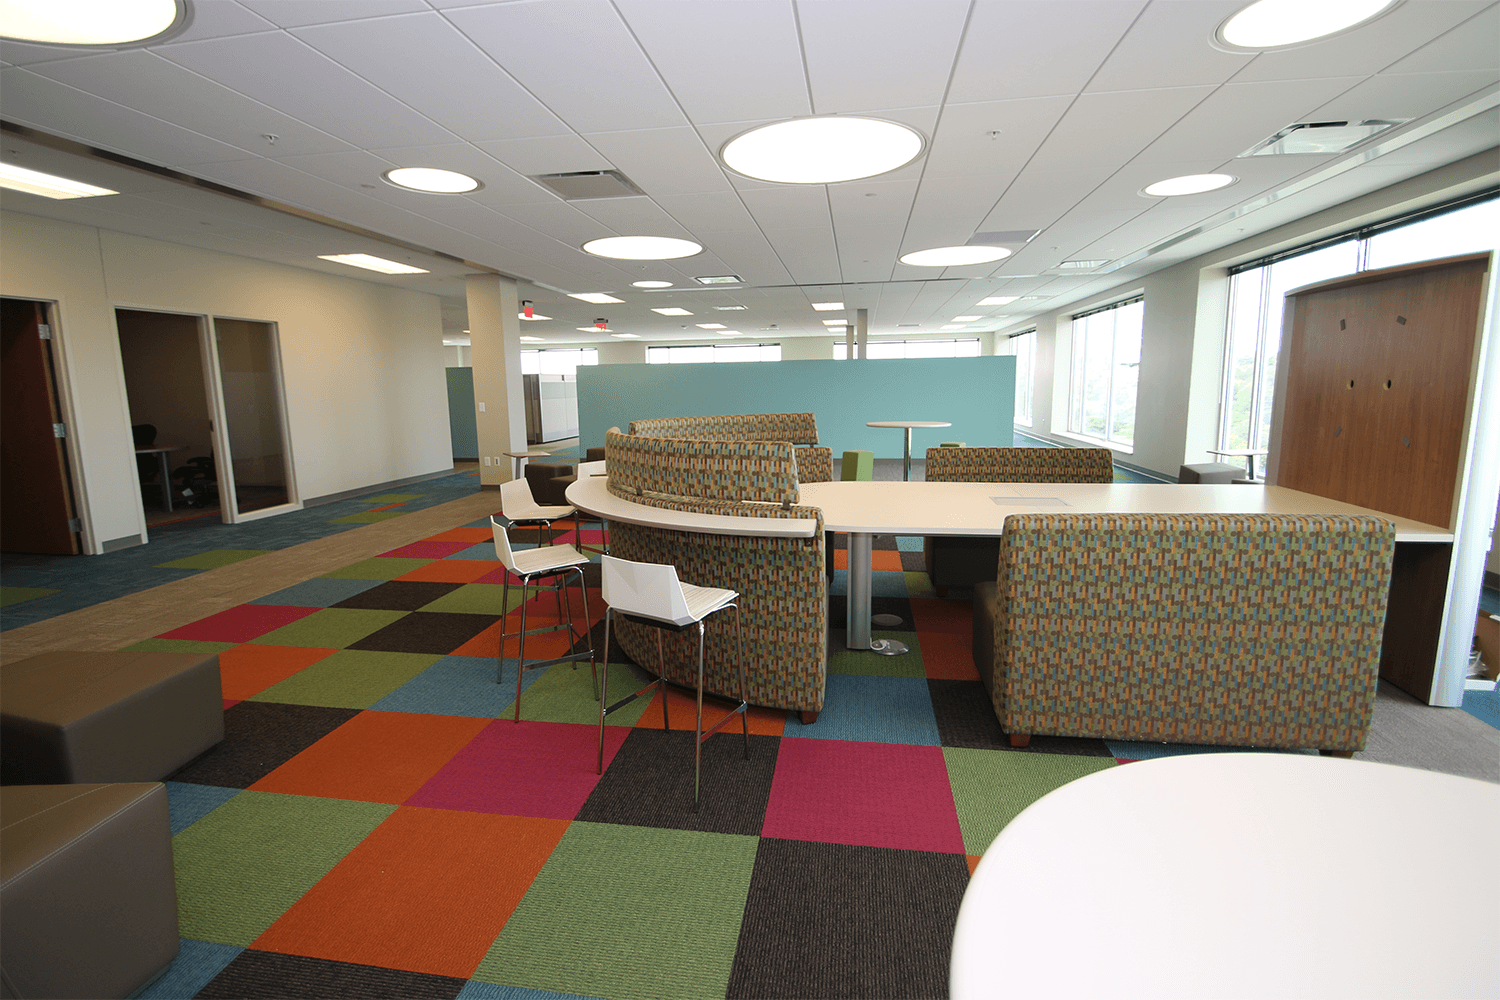 collaborative workspace with geometric, colorful carpet patterns, and a rounded table for meetings